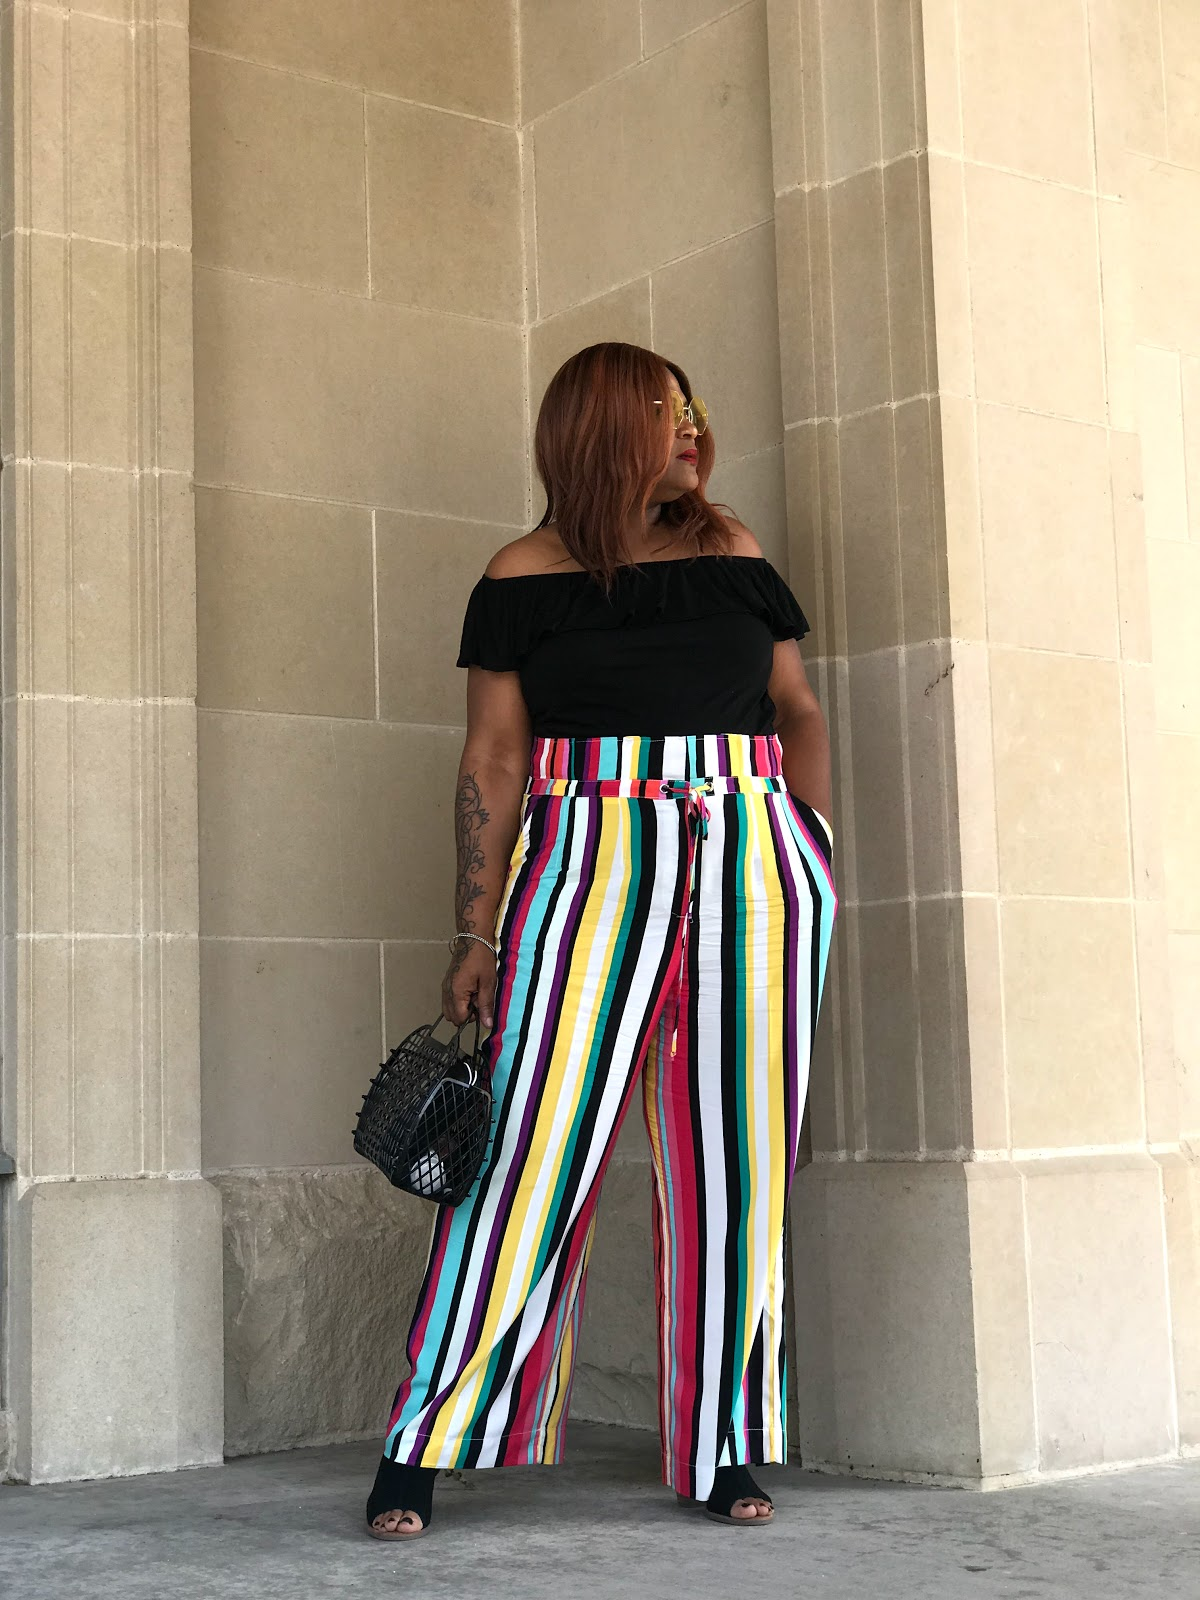 Image: Woman shared several ways how she is not taking wearing stripes seriously.